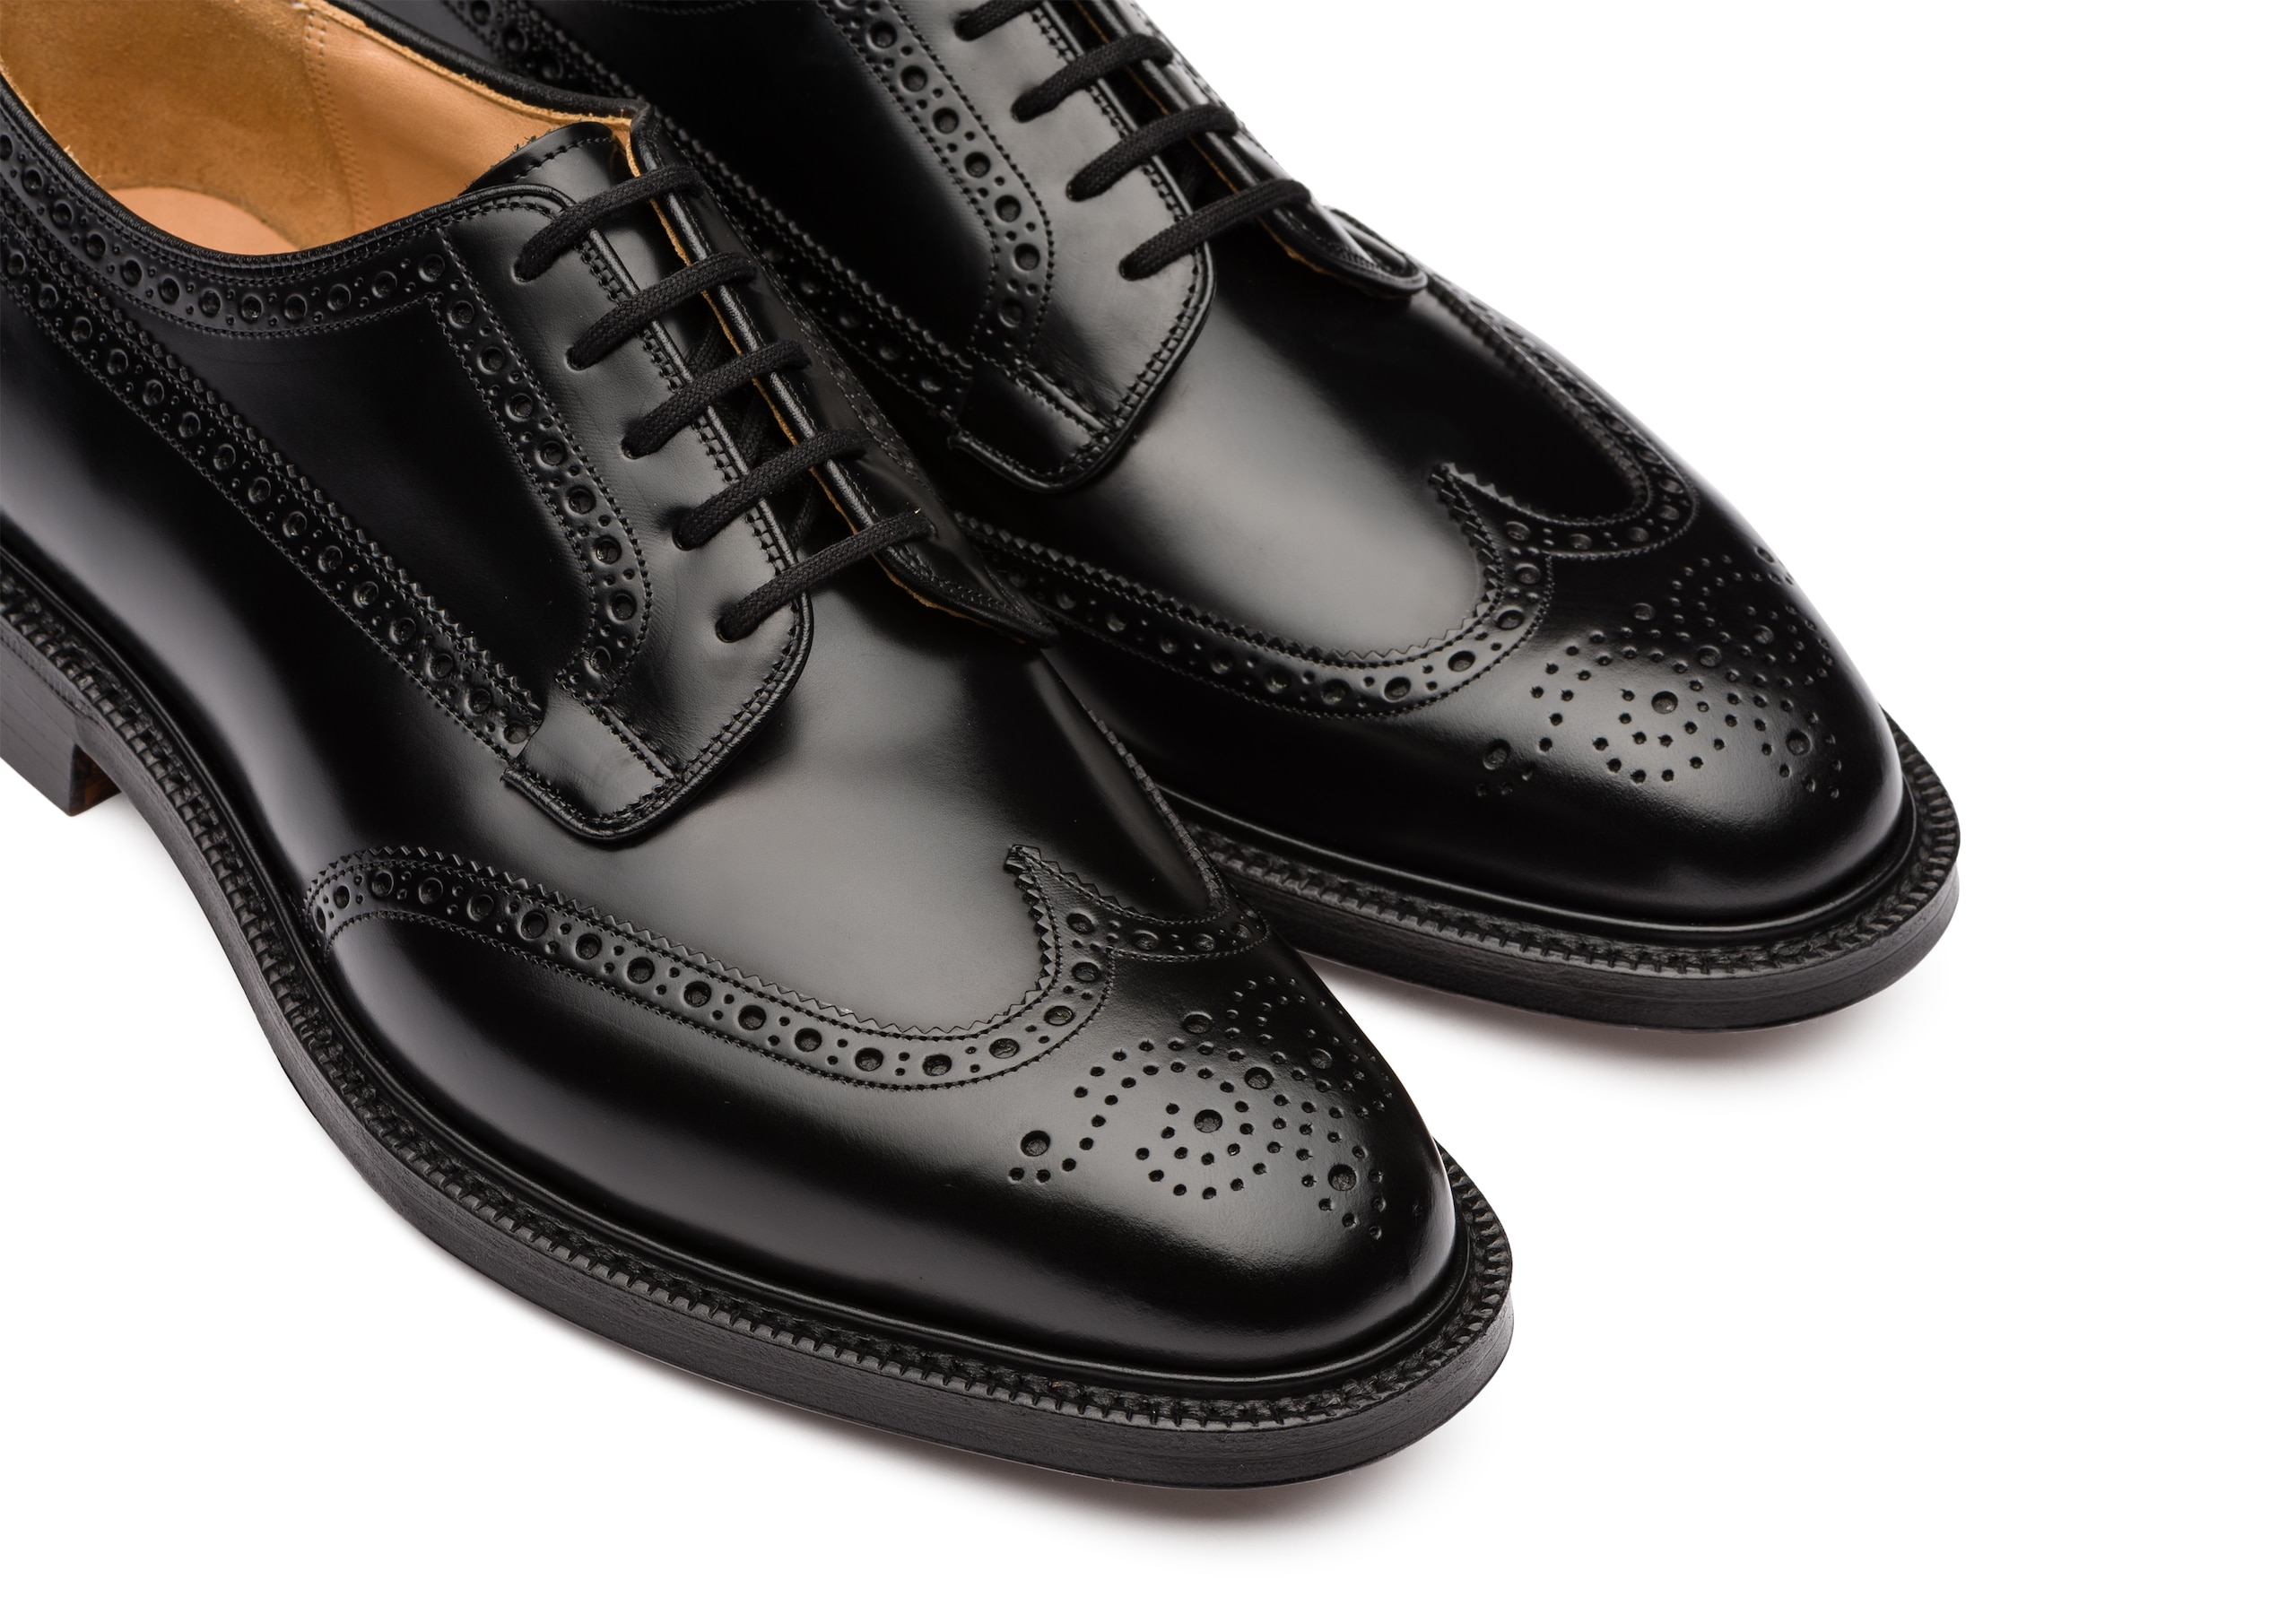 Grafton 173 Church's Polished Binder Derby Brogue Black